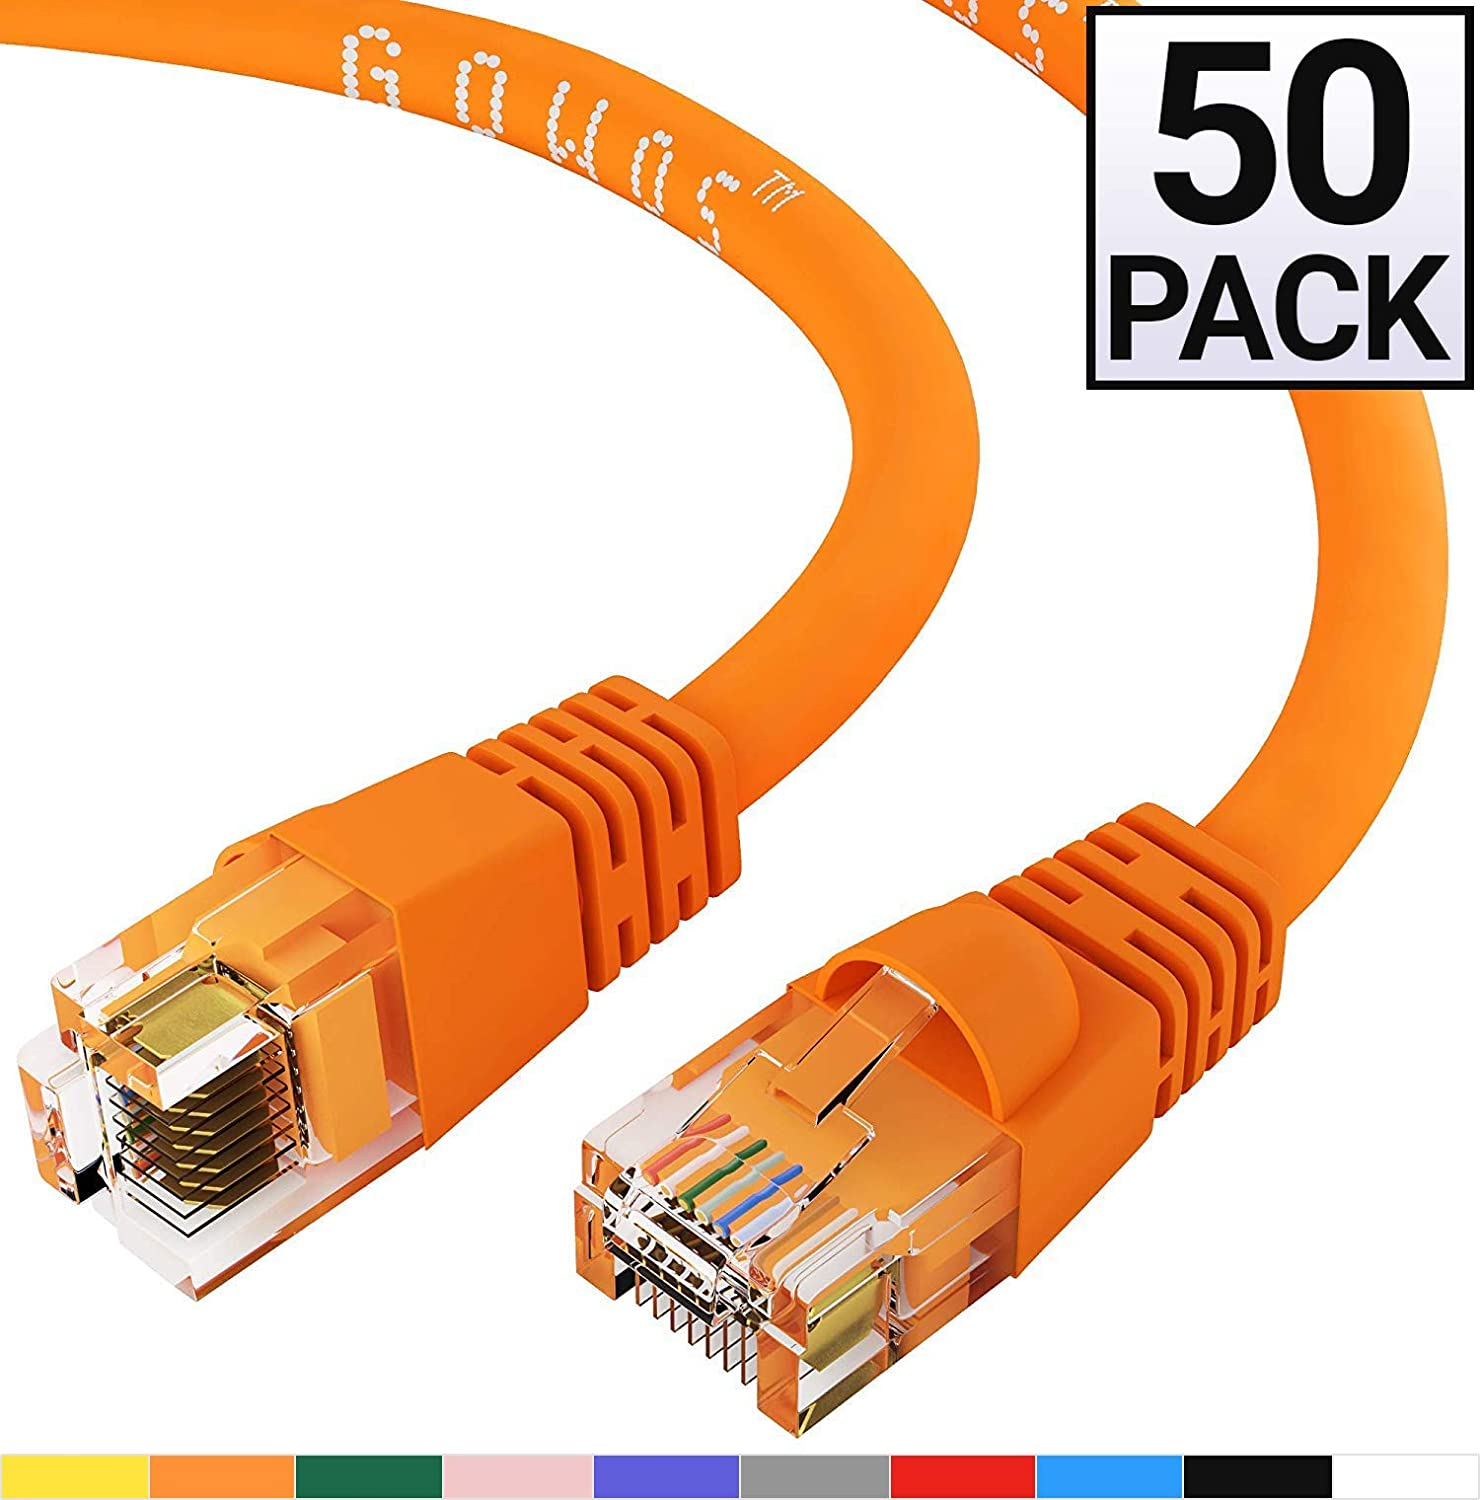 RJ45 10Gbps High Speed LAN Internet Patch Cord Cat6 Ethernet Cable 2 Feet - Green Computer Network Cable with Snagless Connector Available in 28 Lengths and 10 Colors UTP GOWOS 50-Pack